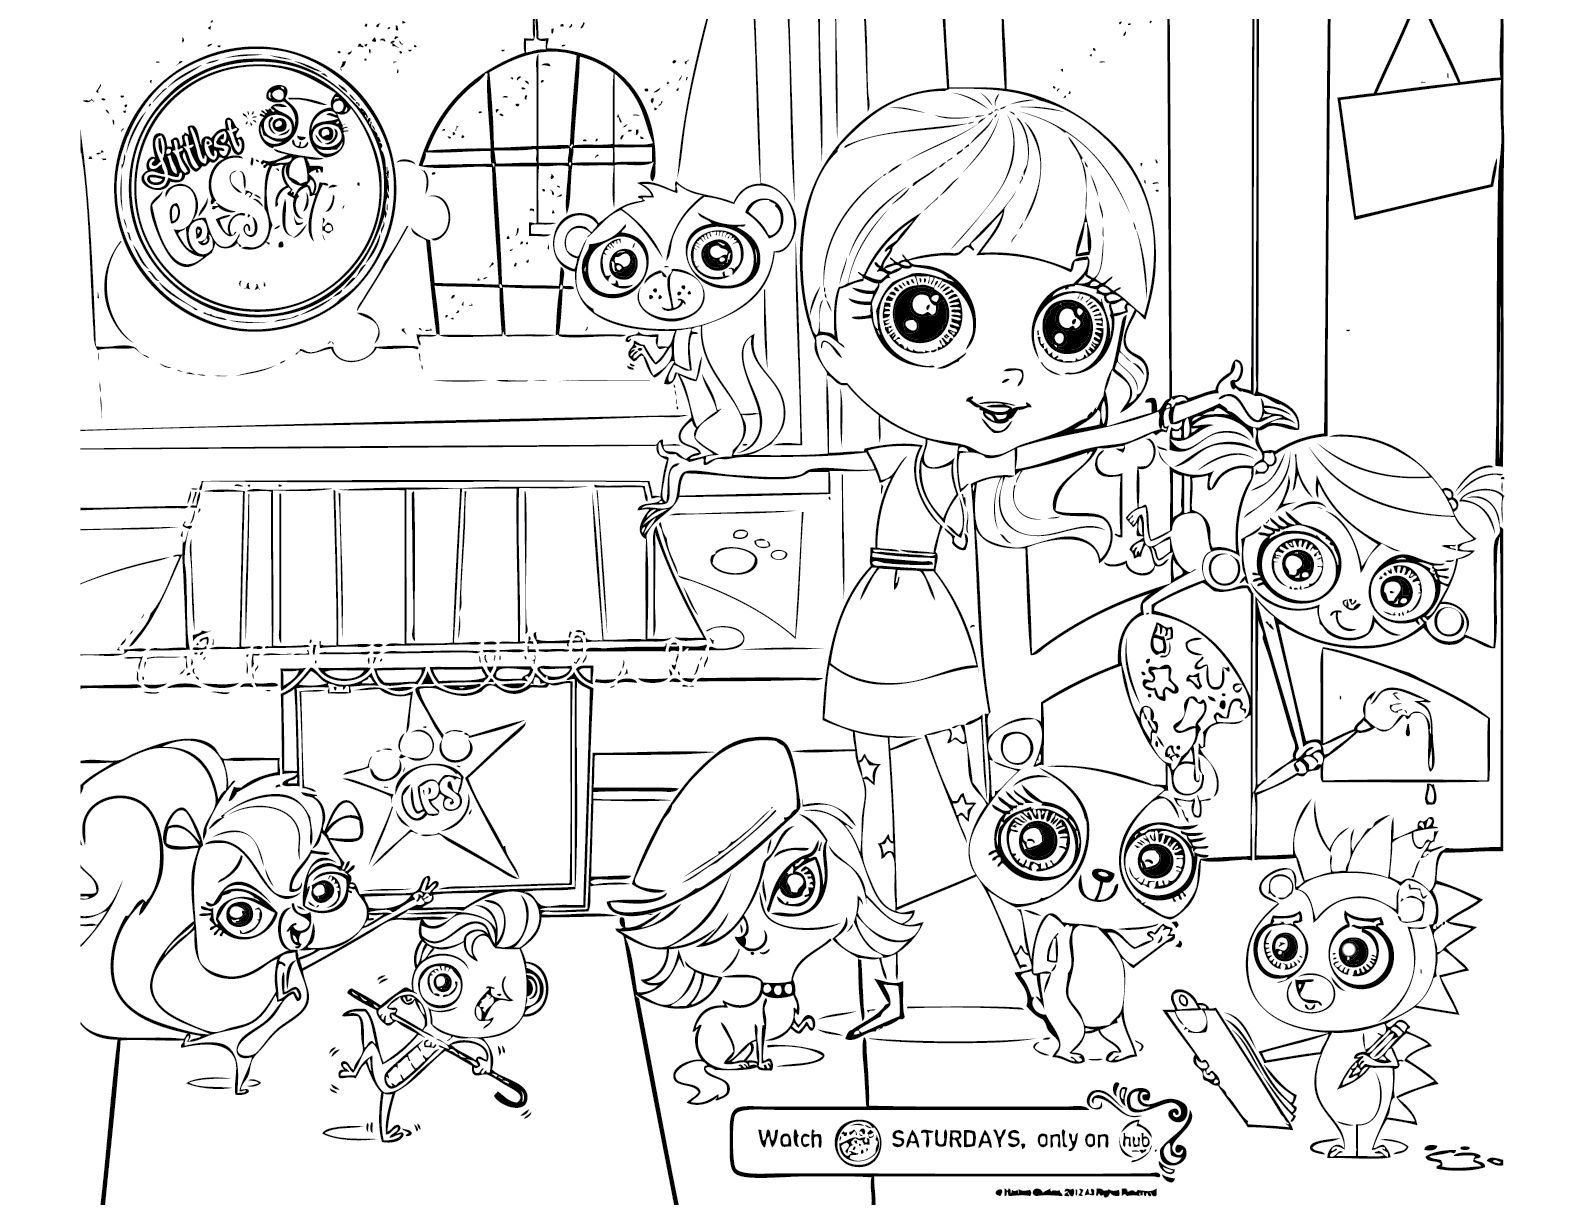 My Littlest Pet Shop Coloring Pages - Free Printable Coloring